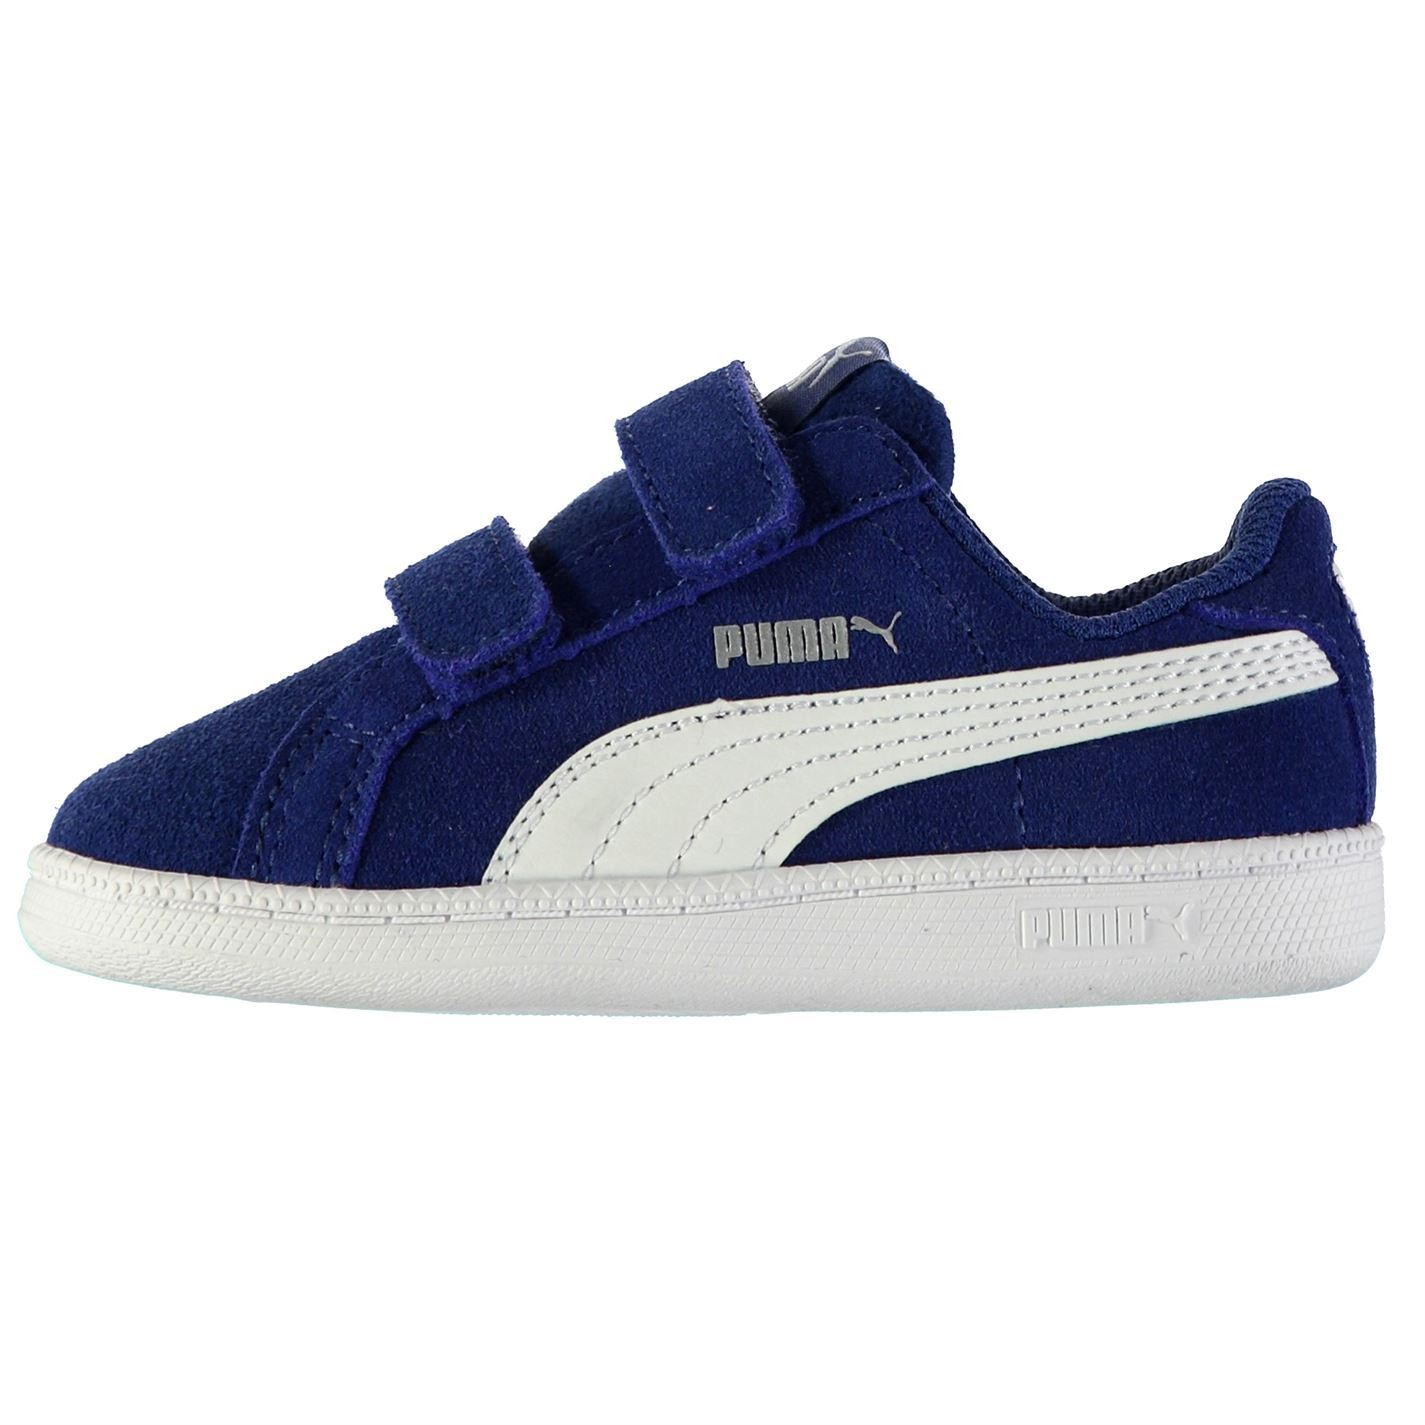 11932ebd912 Details about Puma Kids Smash Suede Fun Trainers Shoes Casual Touch and  Close Infant Boys